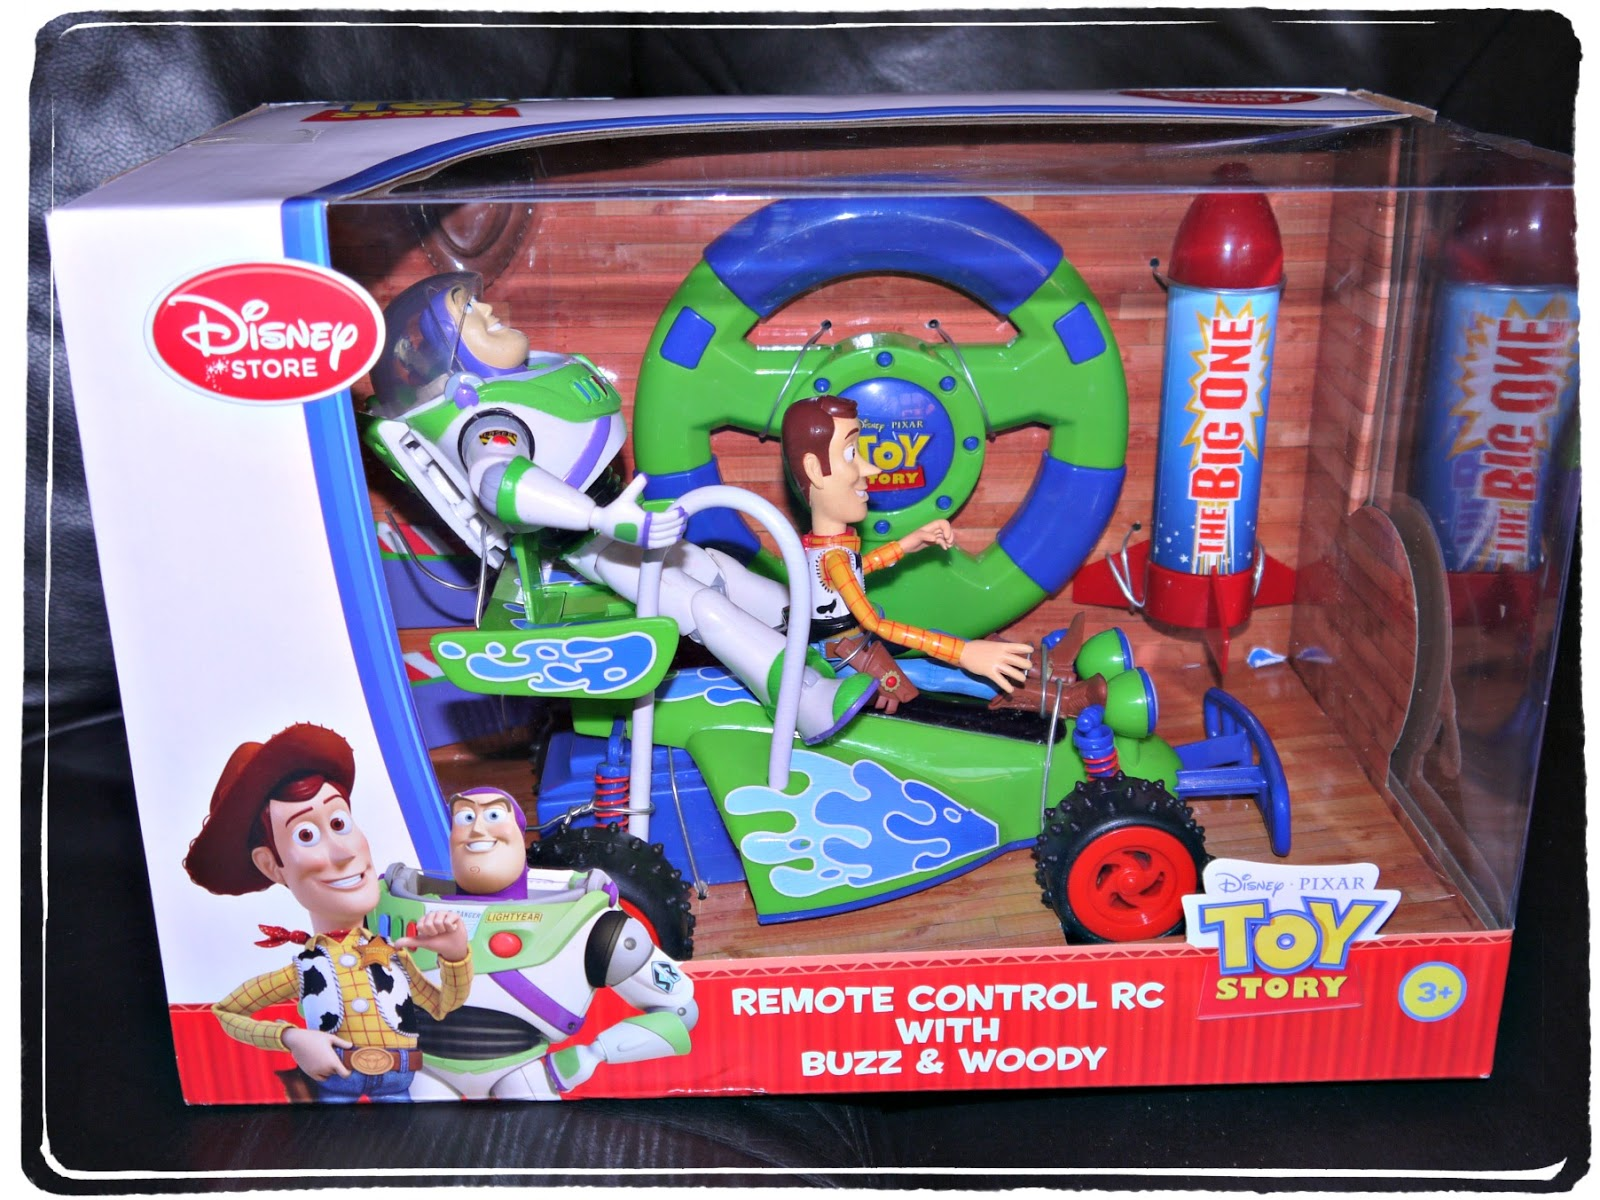 Remote Control Rc With Buzz And Woody It Is Completely